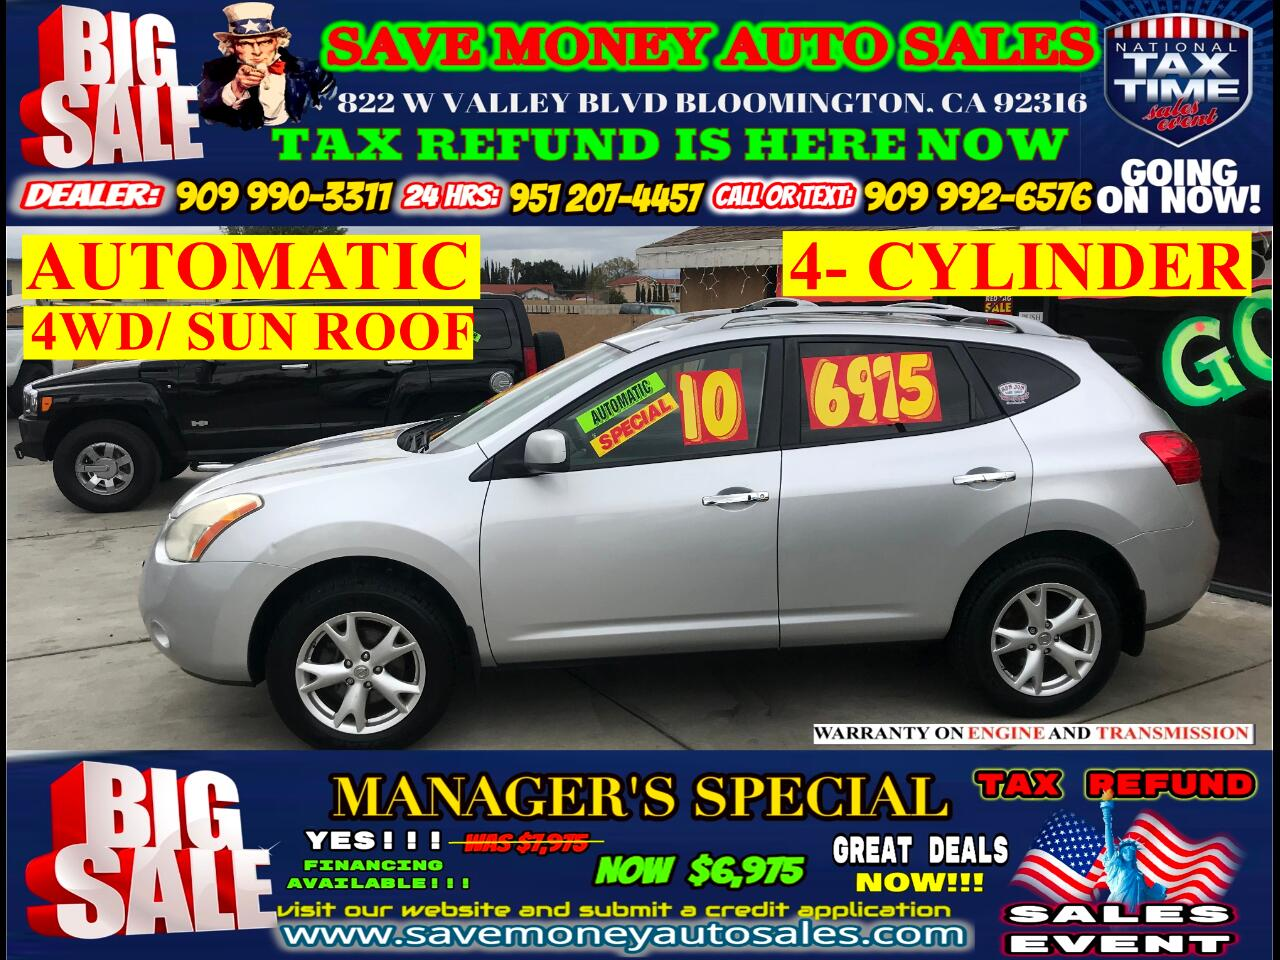 2010 Nissan Rogue SL AWD/ 4- CYLINDER> SUN ROOF> EXTRA CLEAN